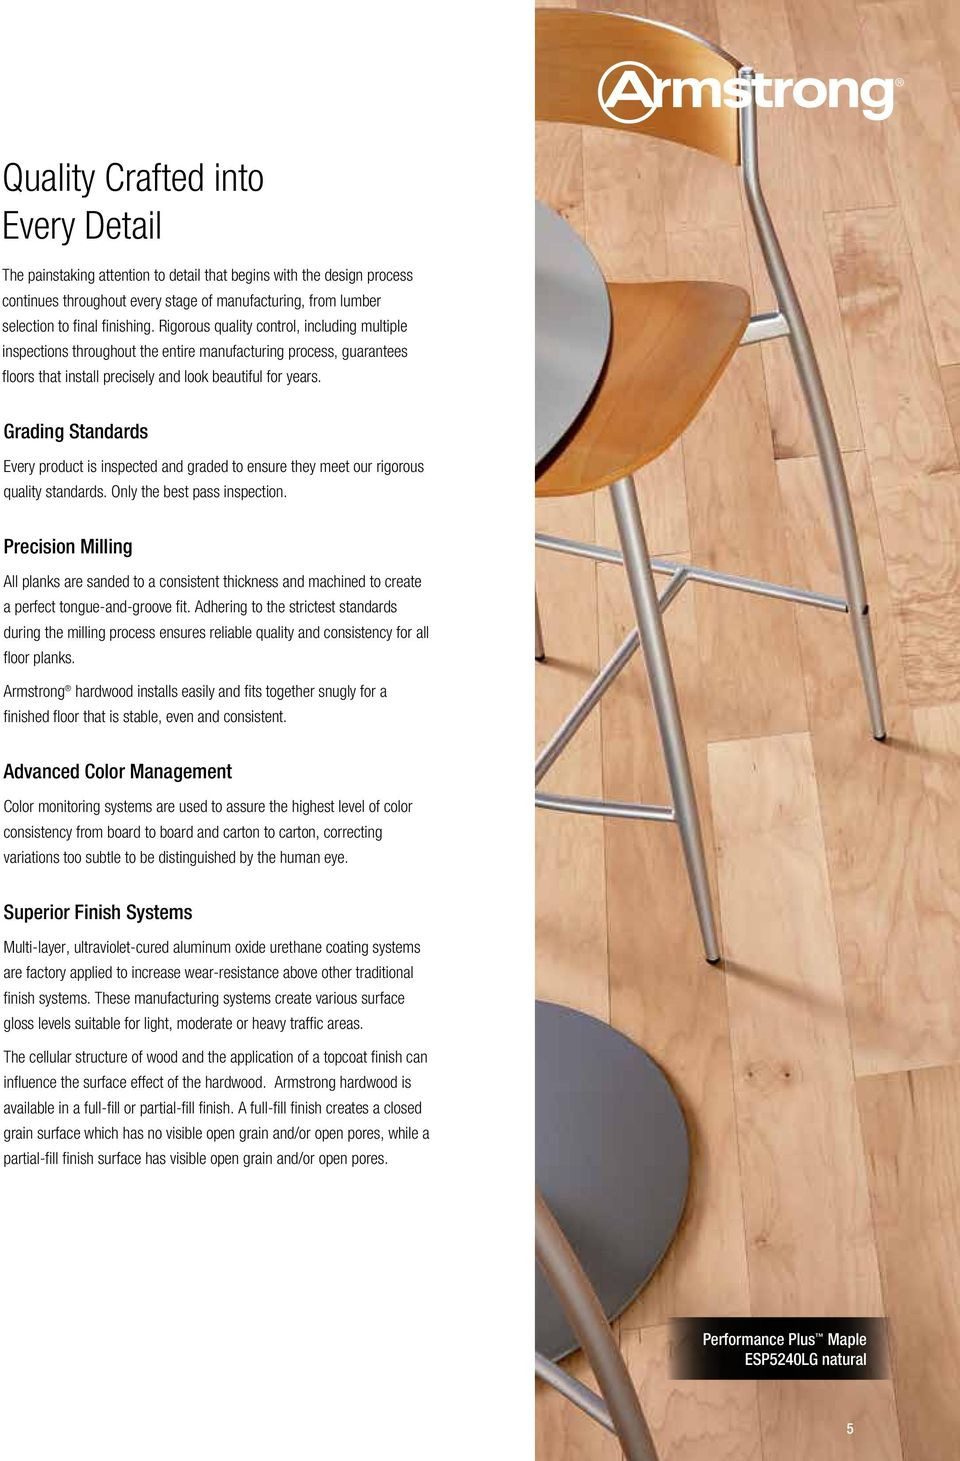 armstrong engineered maple hardwood flooring of performance plus midtown pdf with grading standards every product is inspected and graded to ensure they meet our rigorous quality standards